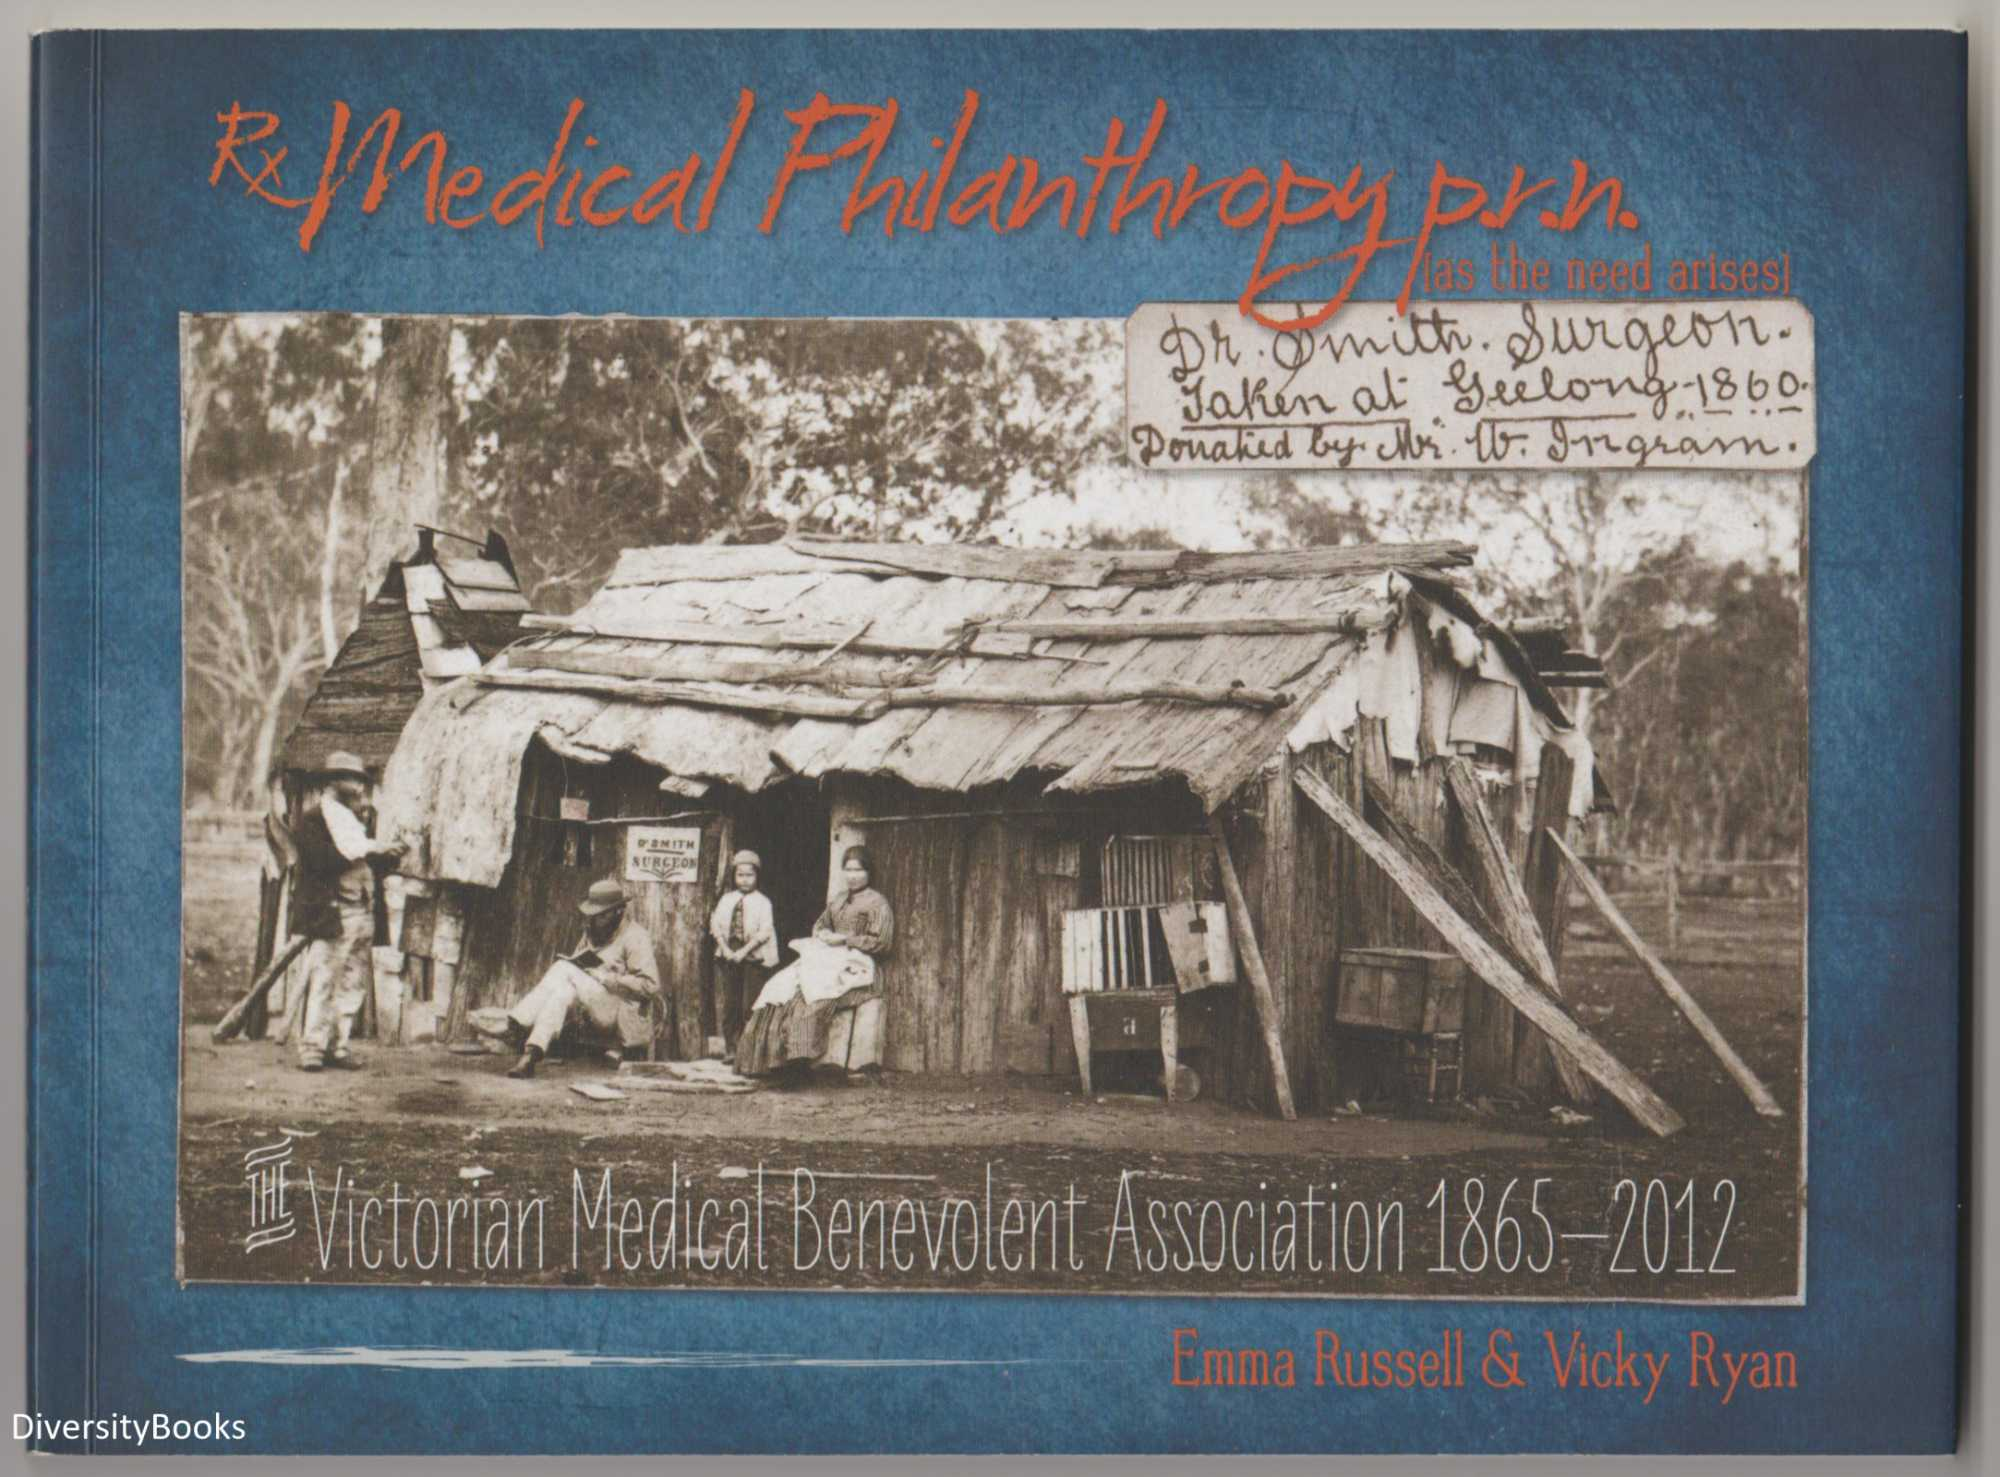 Image for RX MEDICAL PHILANTHROPY P.R.N. (As the Need Arises)  The Victorian Medical Benevolent Association 1865-2012